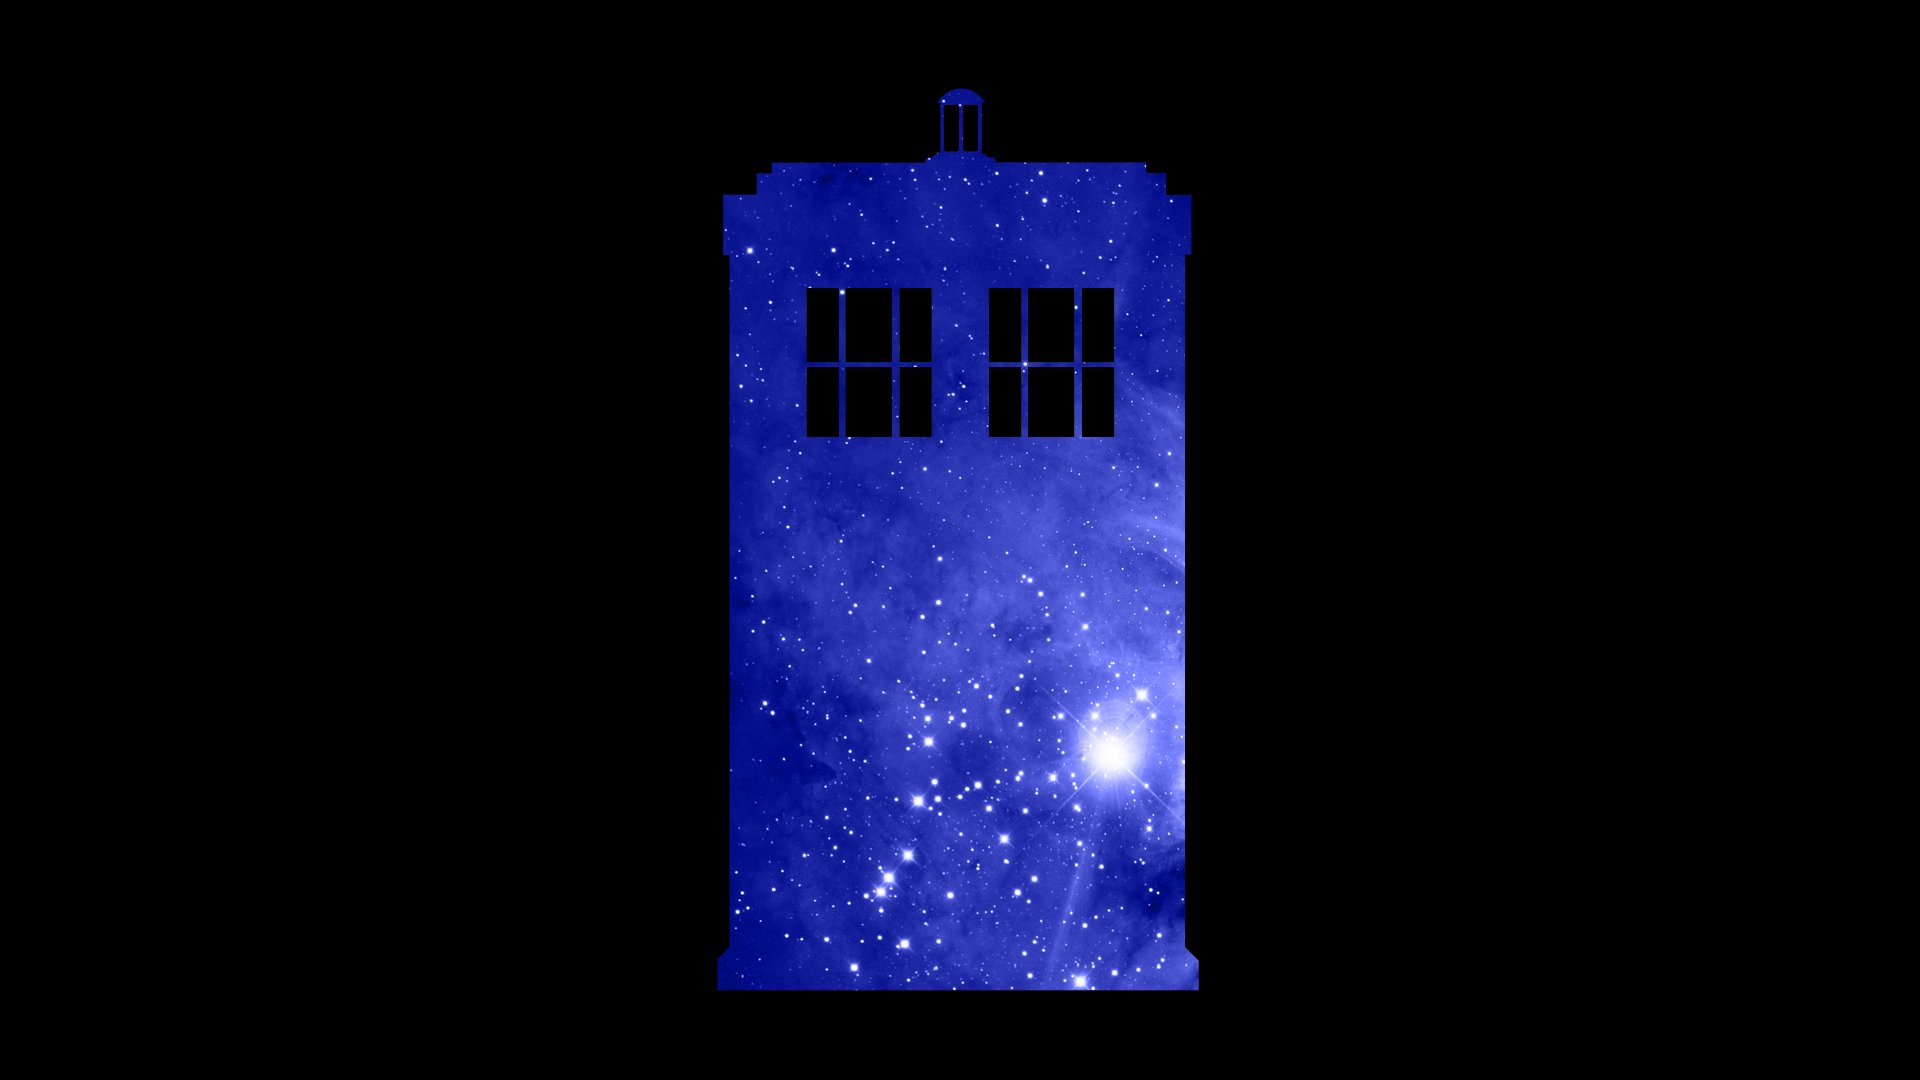 Tardis Iphone 4 Wallpaper Tardis Wallpapers Photos And Desktop Backgrounds Up To 8k